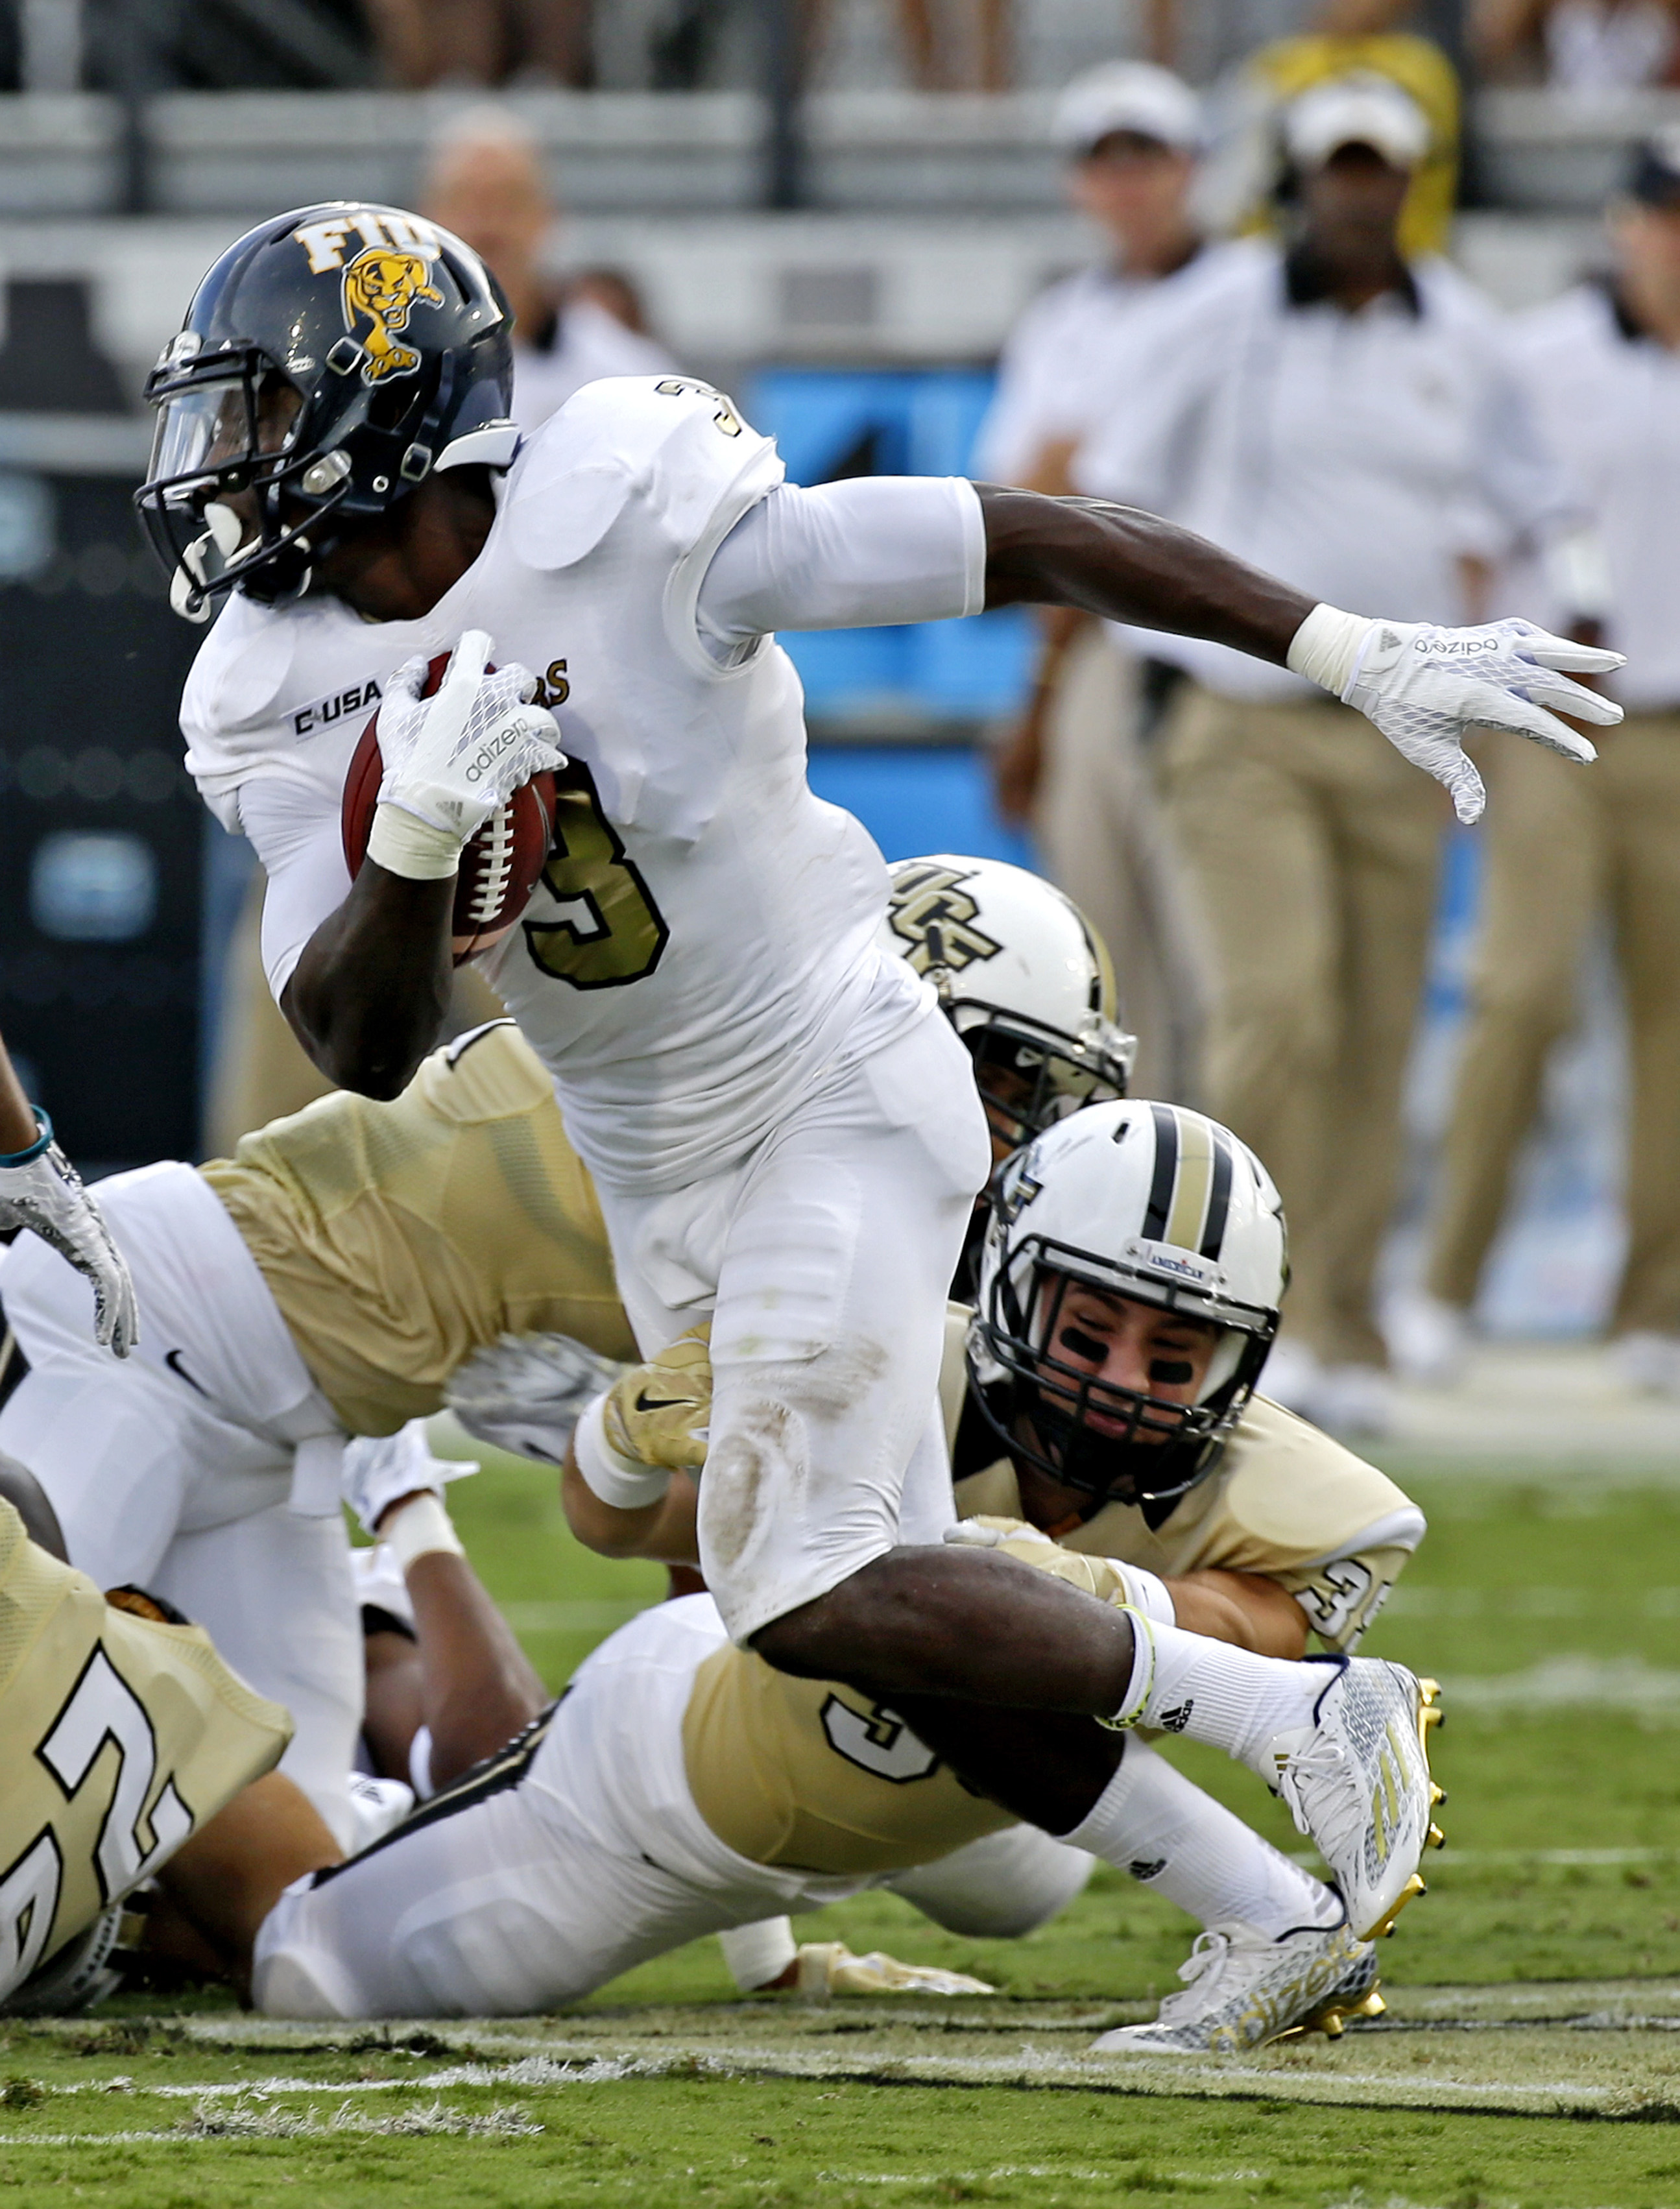 Florida International's Richard Leonard, left, is stopped by Central Florida's Brendin Straubel, lower right, on a kick return during the first half of an NCAA college football game, Thursday, Sept. 3, 2015, in Orlando, Fla. (AP Photo/John Raoux)